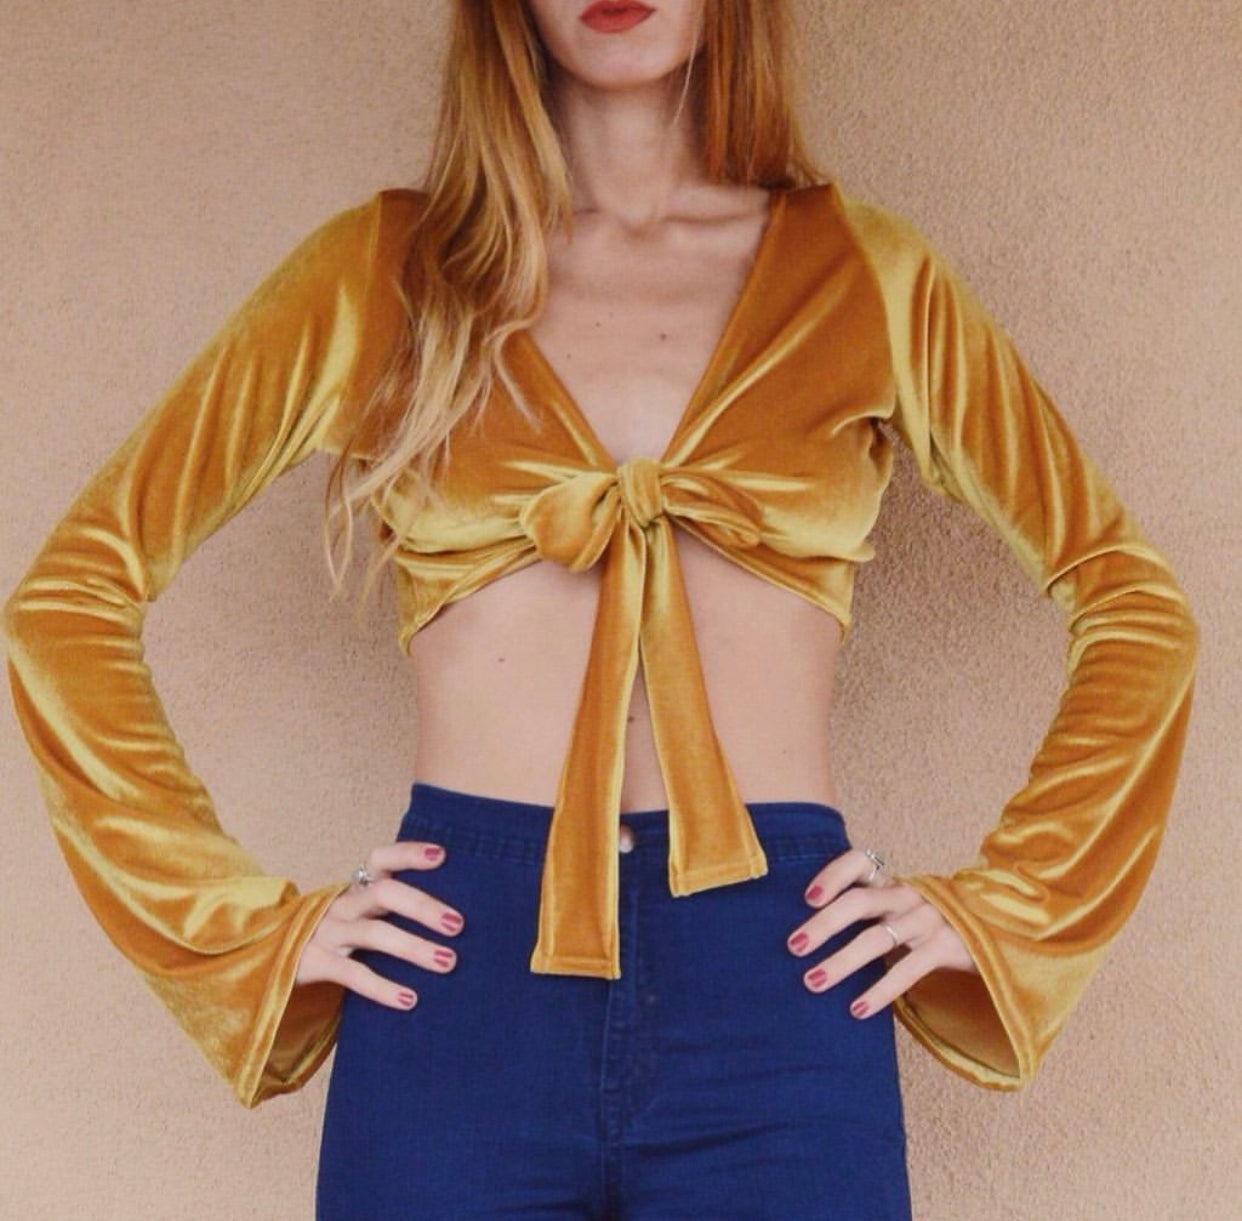 Bell Sleeve Tie Top in Yellow Gold